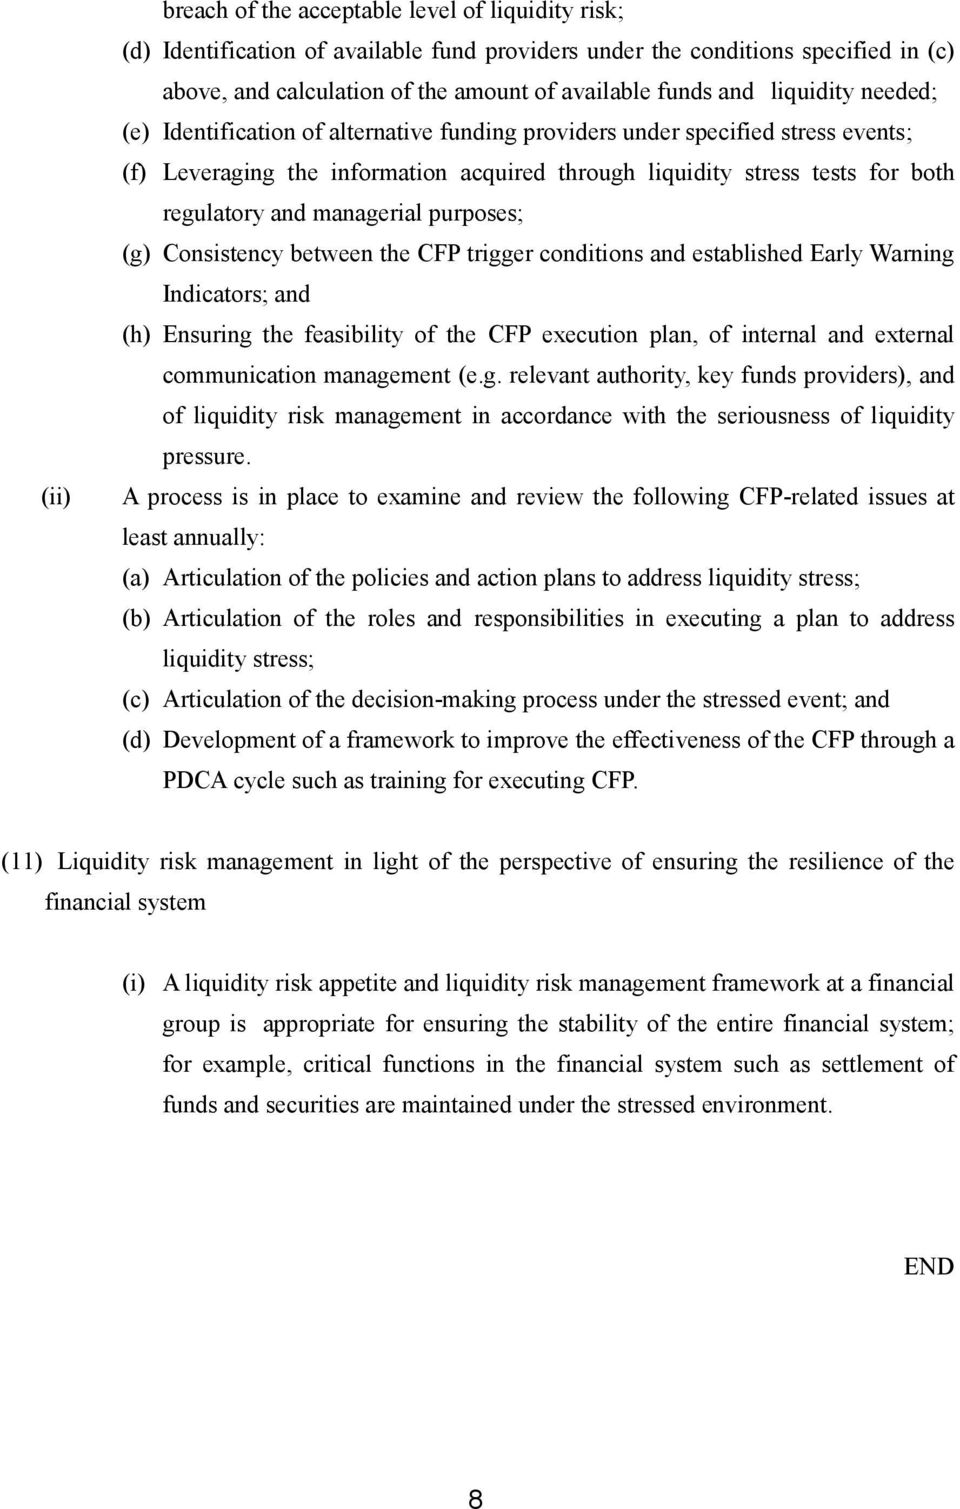 managerial purposes; (g) Consistency between the CFP trigger conditions and established Early Warning Indicators; and (h) Ensuring the feasibility of the CFP execution plan, of internal and external